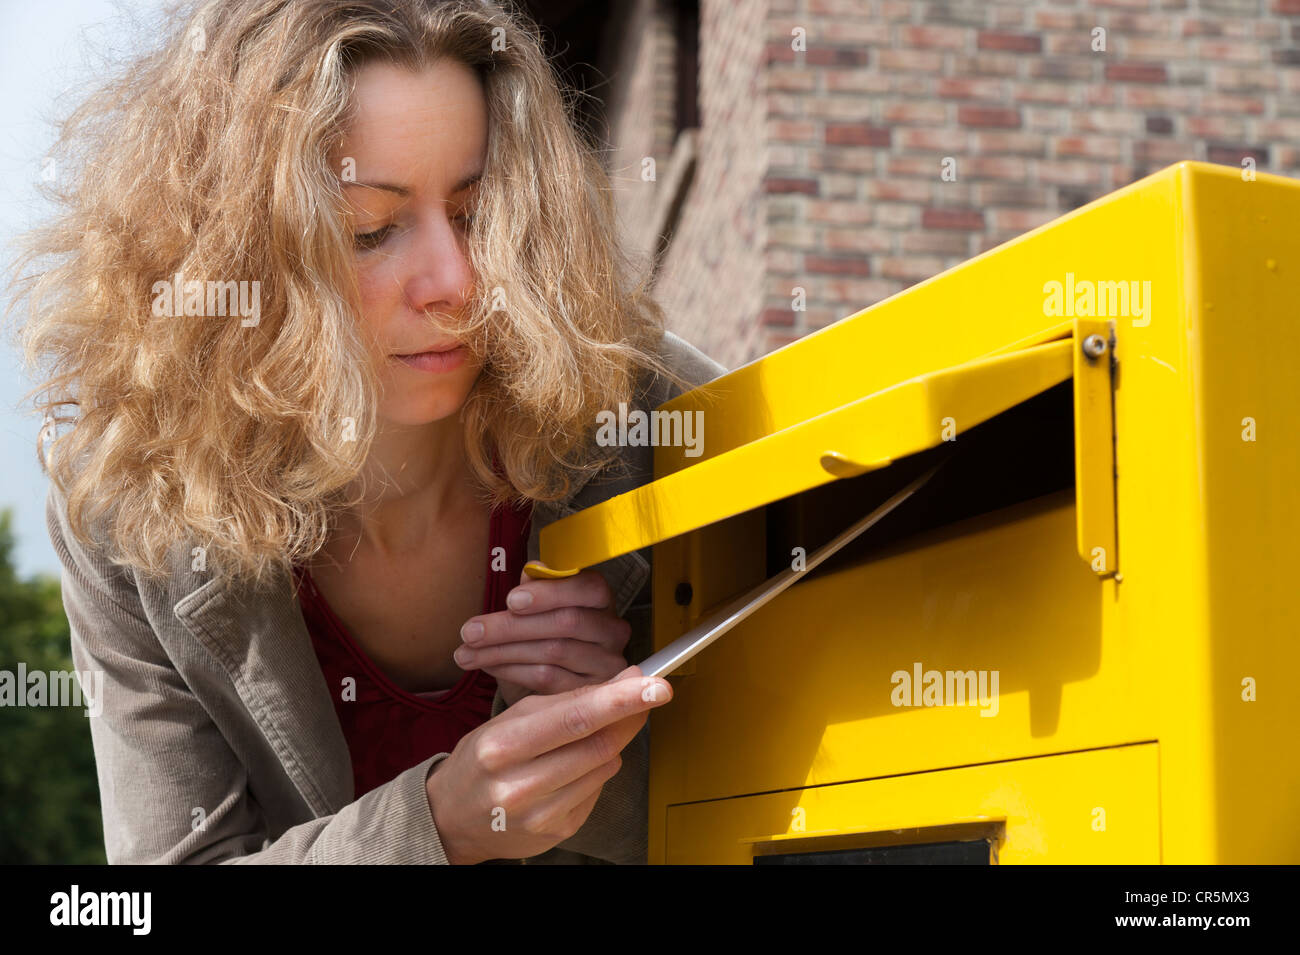 Young woman putting letter into a postbox - Stock Image